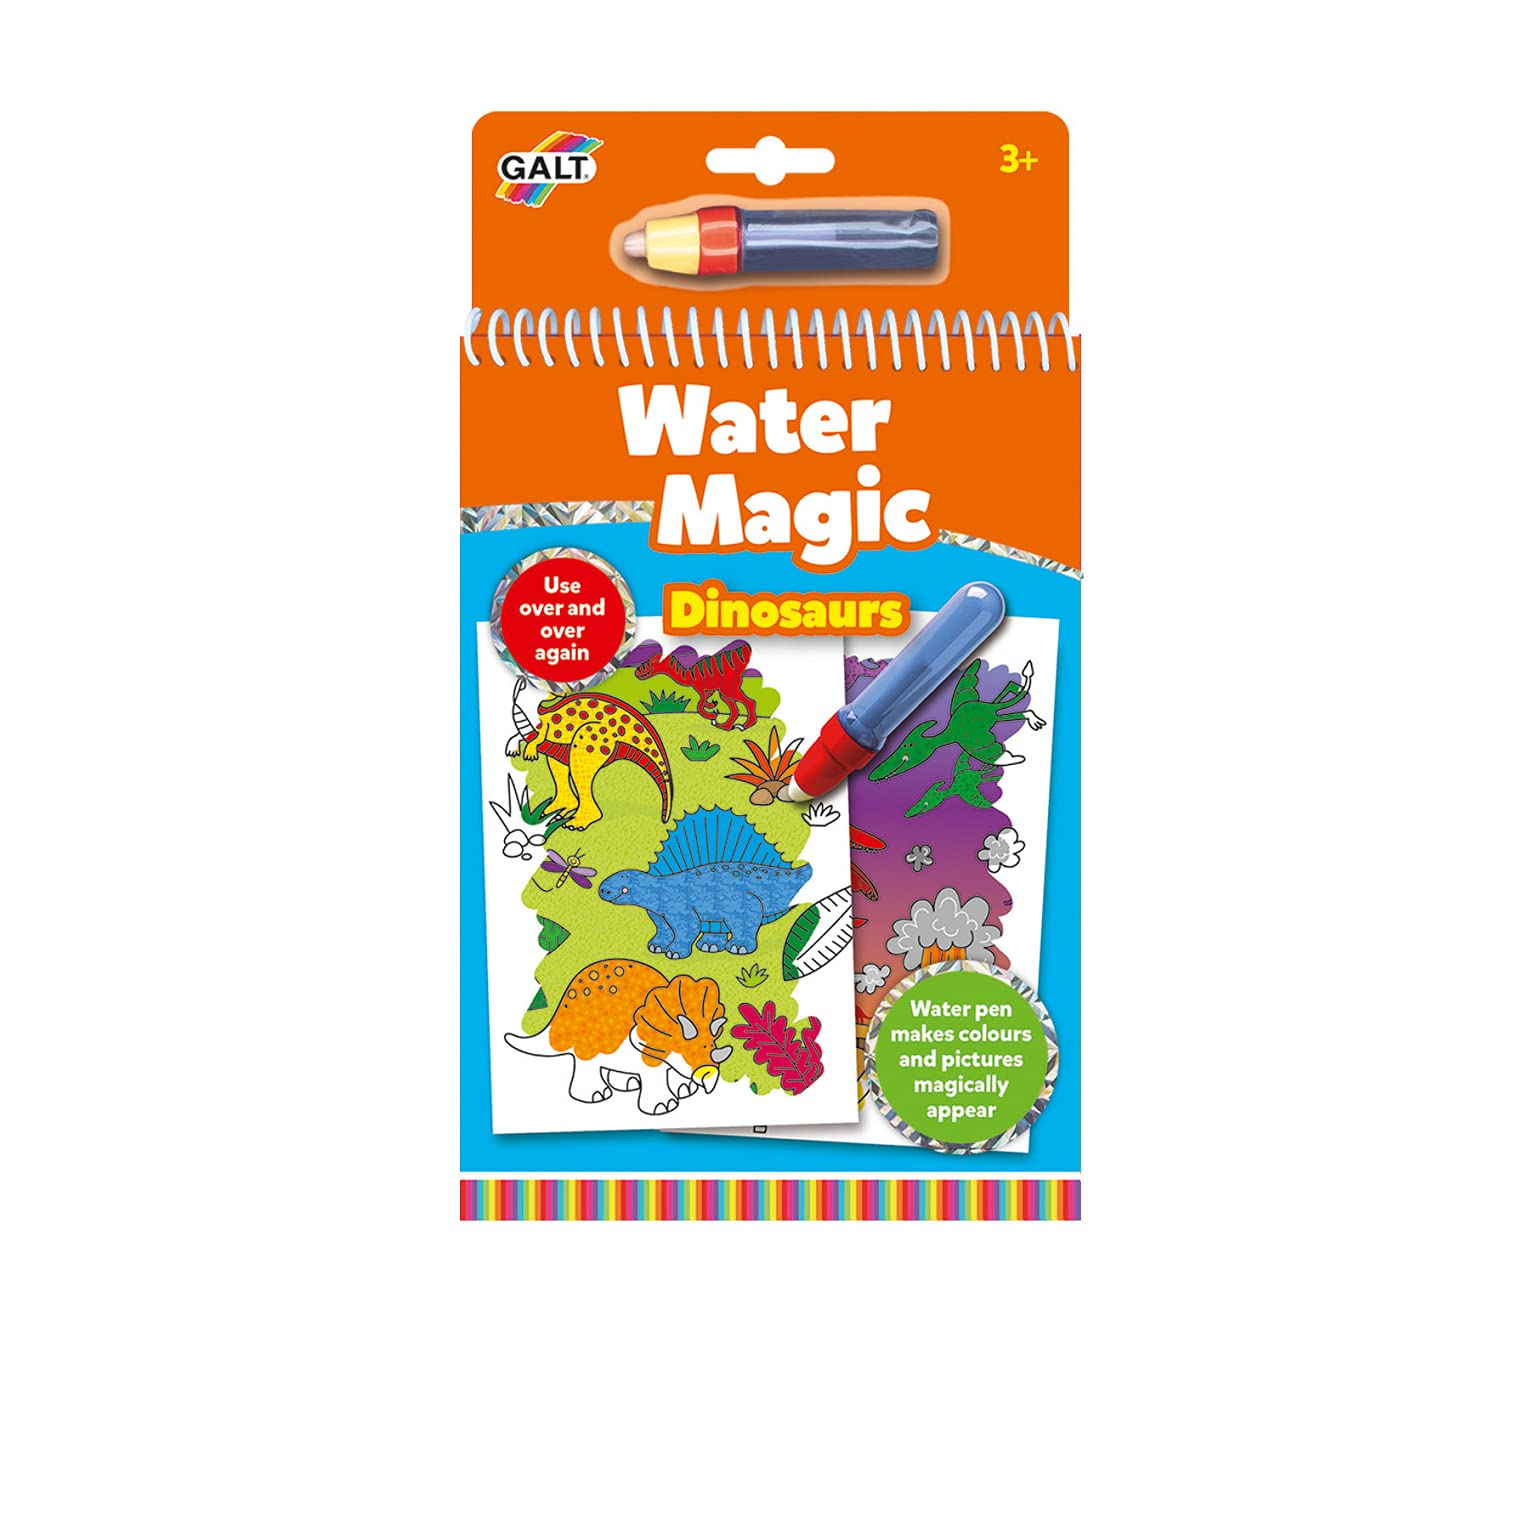 Galt Toys, Water Magic - Dinosaurs, Colouring Book for Children, Ages 3 Years Plus